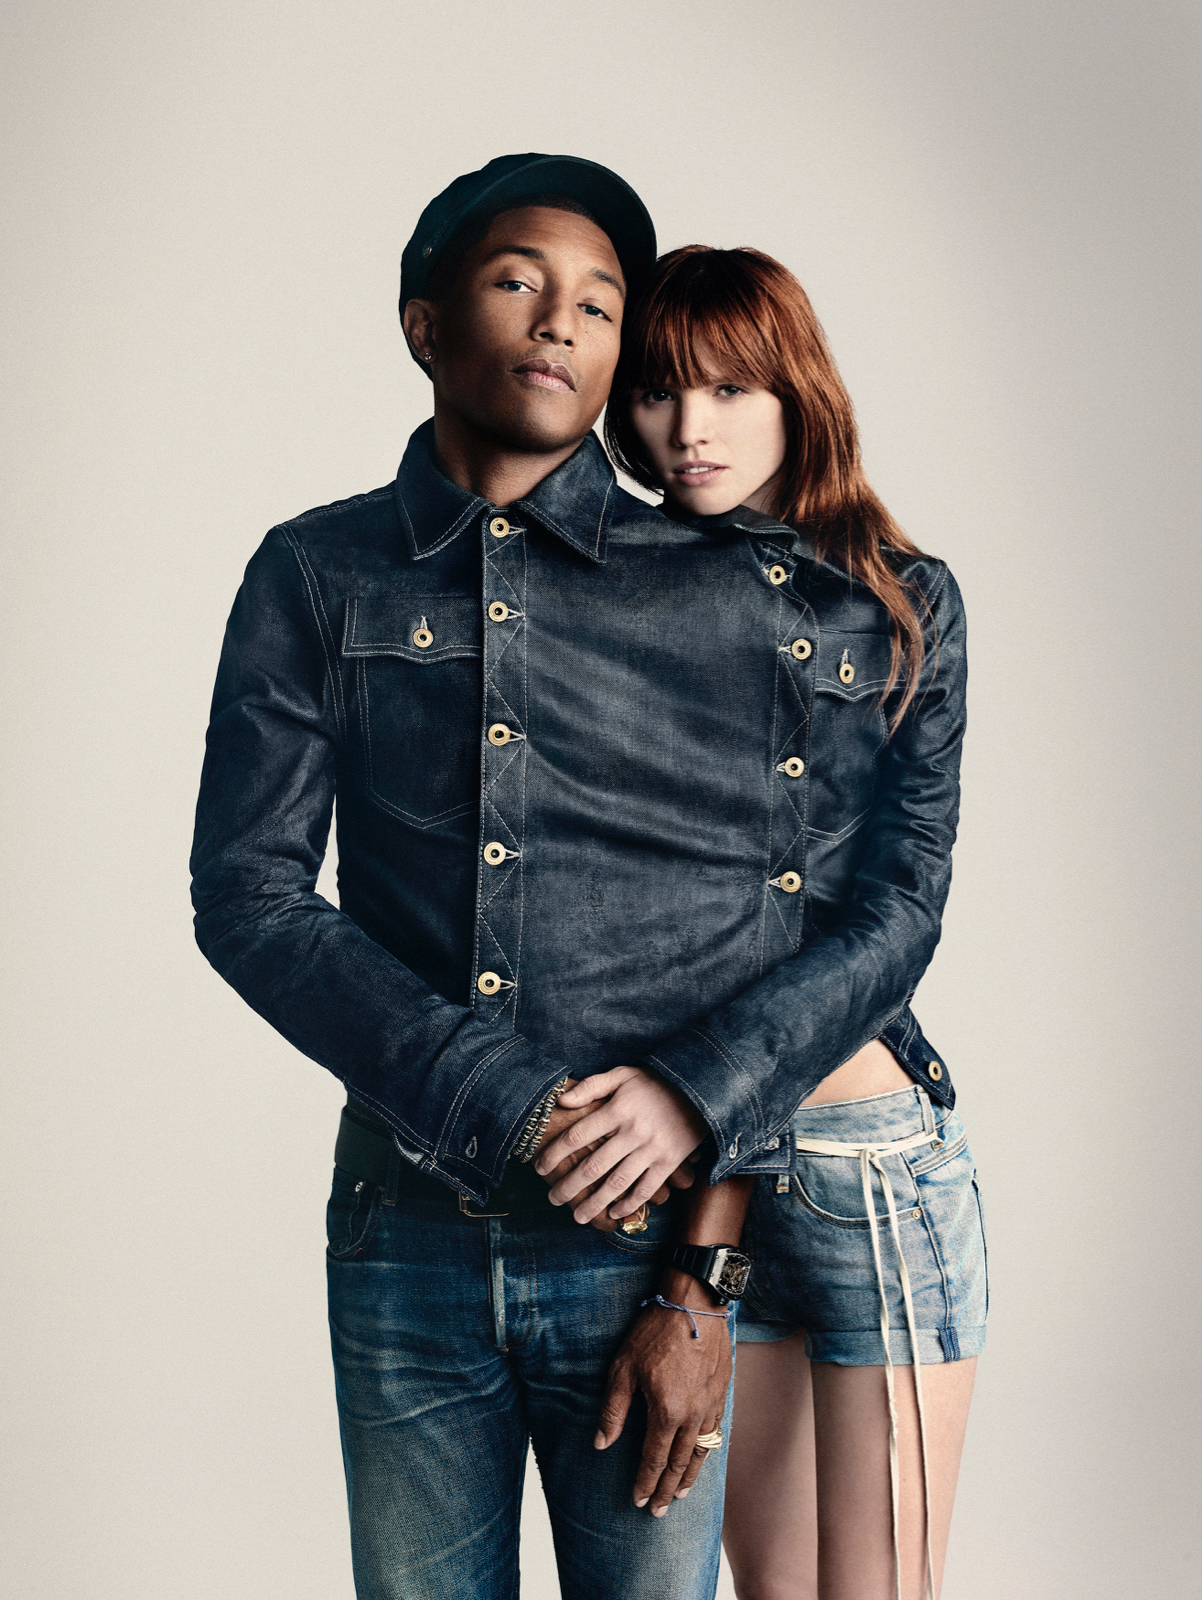 PHARRELL WILLIAMS BECOMES CO-OWNER OF G-STAR RAW